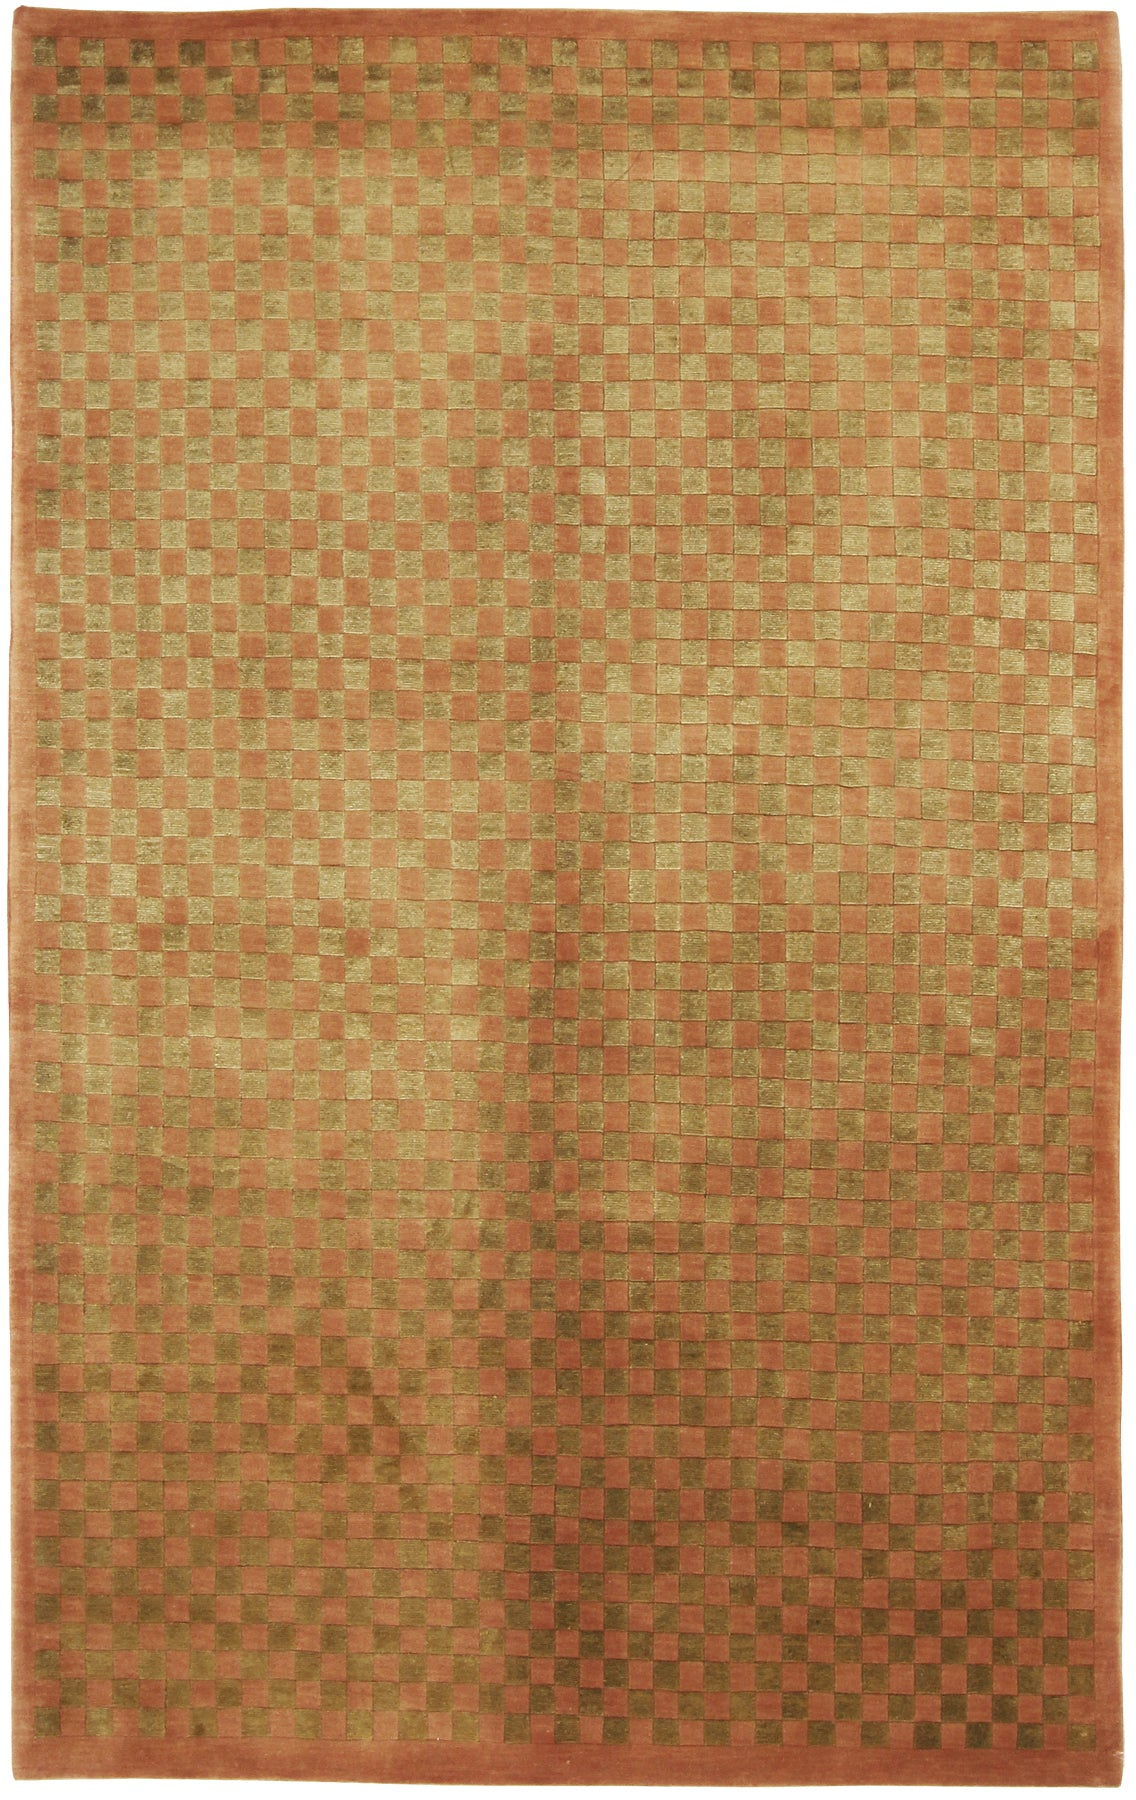 Checker Rug Wool & Silk-Turco Persian Rug Company Inc.